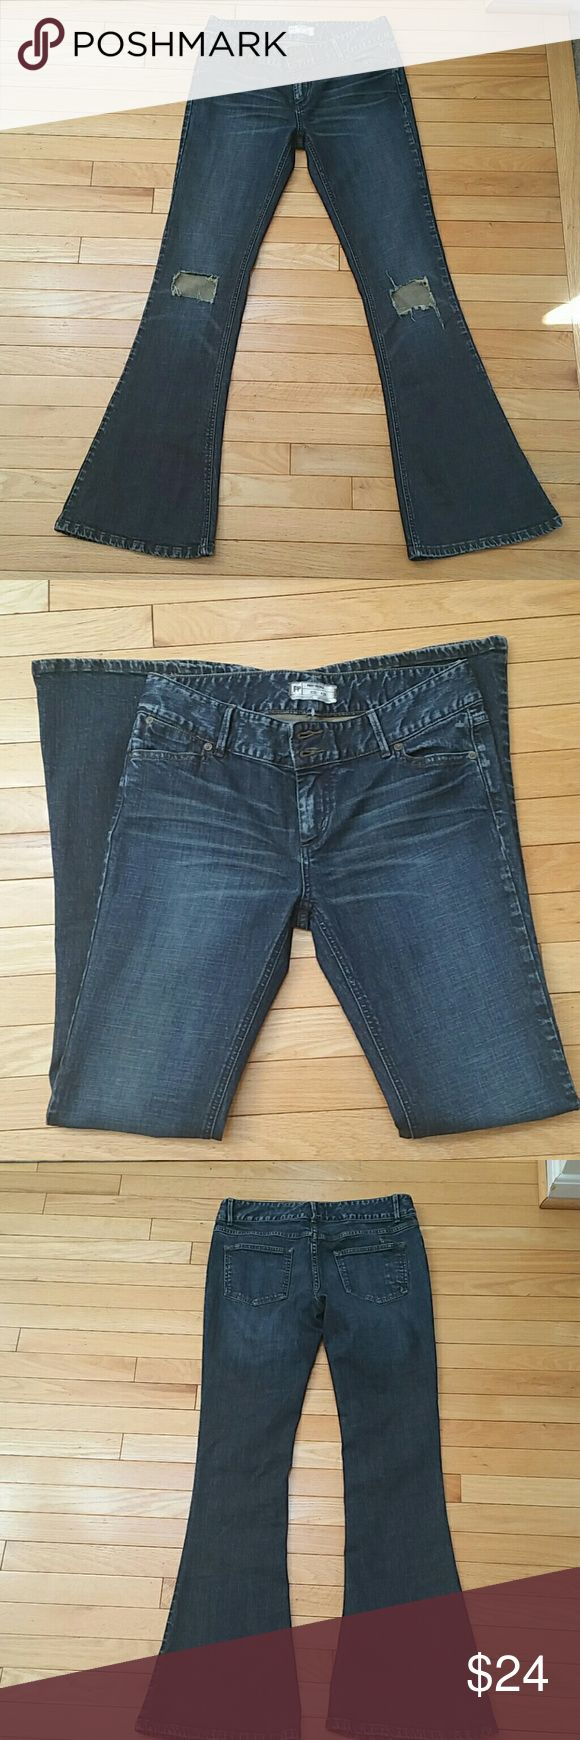 """Free people jeans Free people jeans.  Length 43"""" inseam 34"""" rise 9"""". NWOT Free People Jeans"""